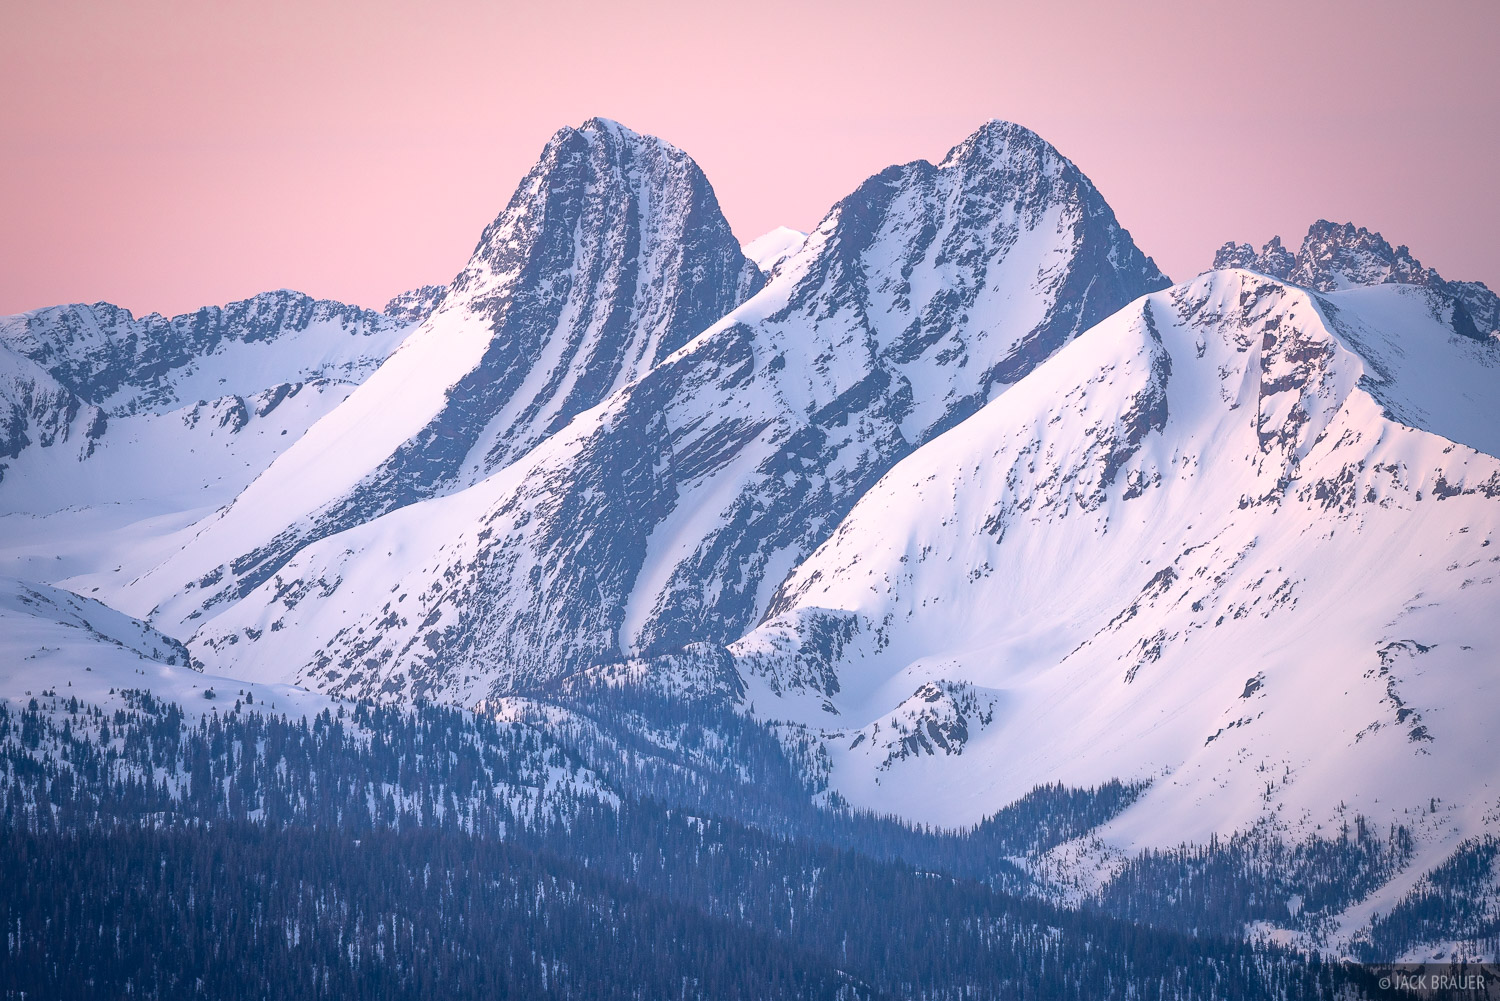 Arrow Peak, Colorado, Grenadier Range, San Juan Mountains, Vestal Peak, Weminuche Wilderness, sunrise